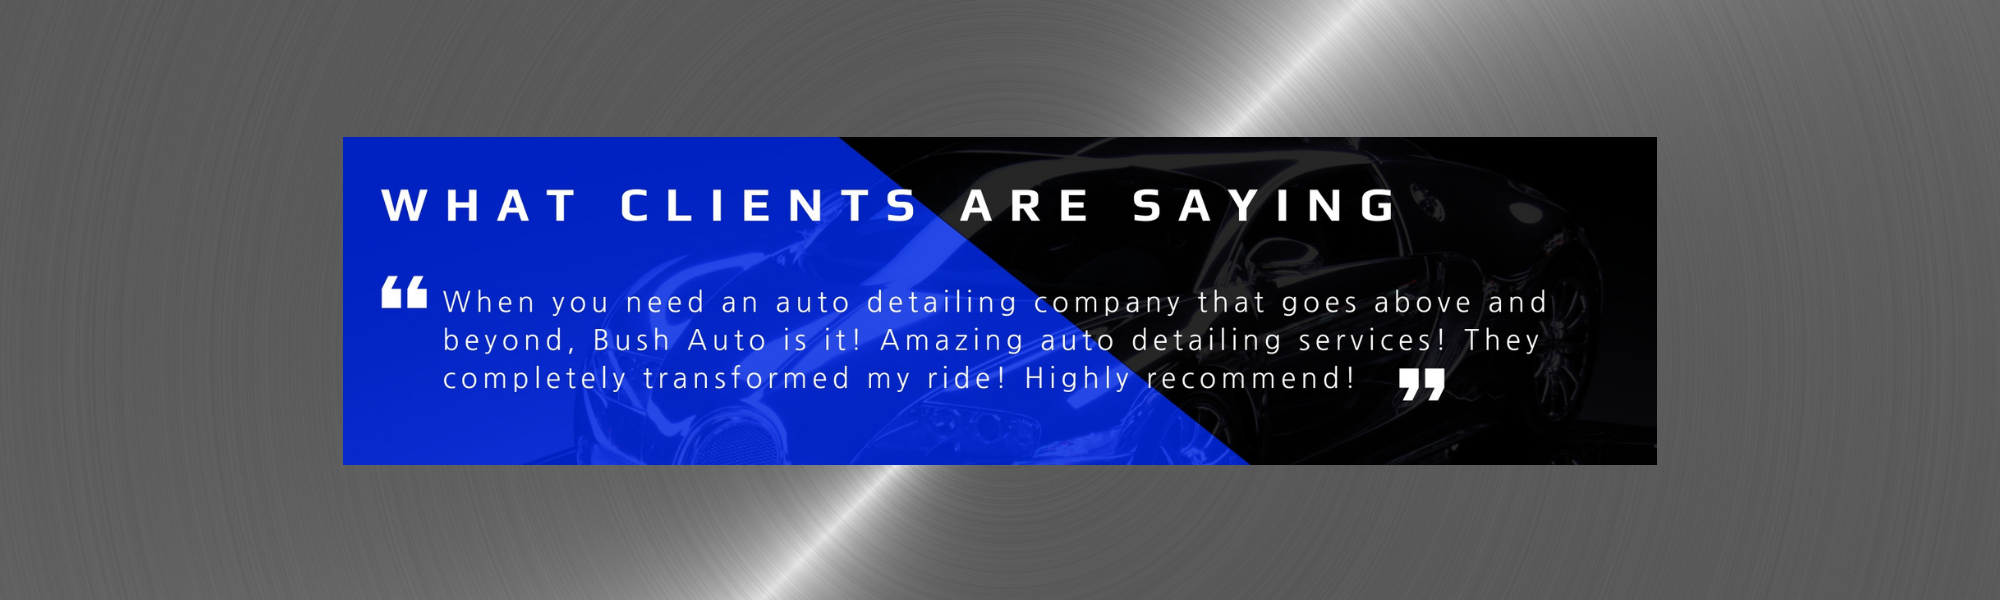 What clients are saying about Bush Auto Detailing